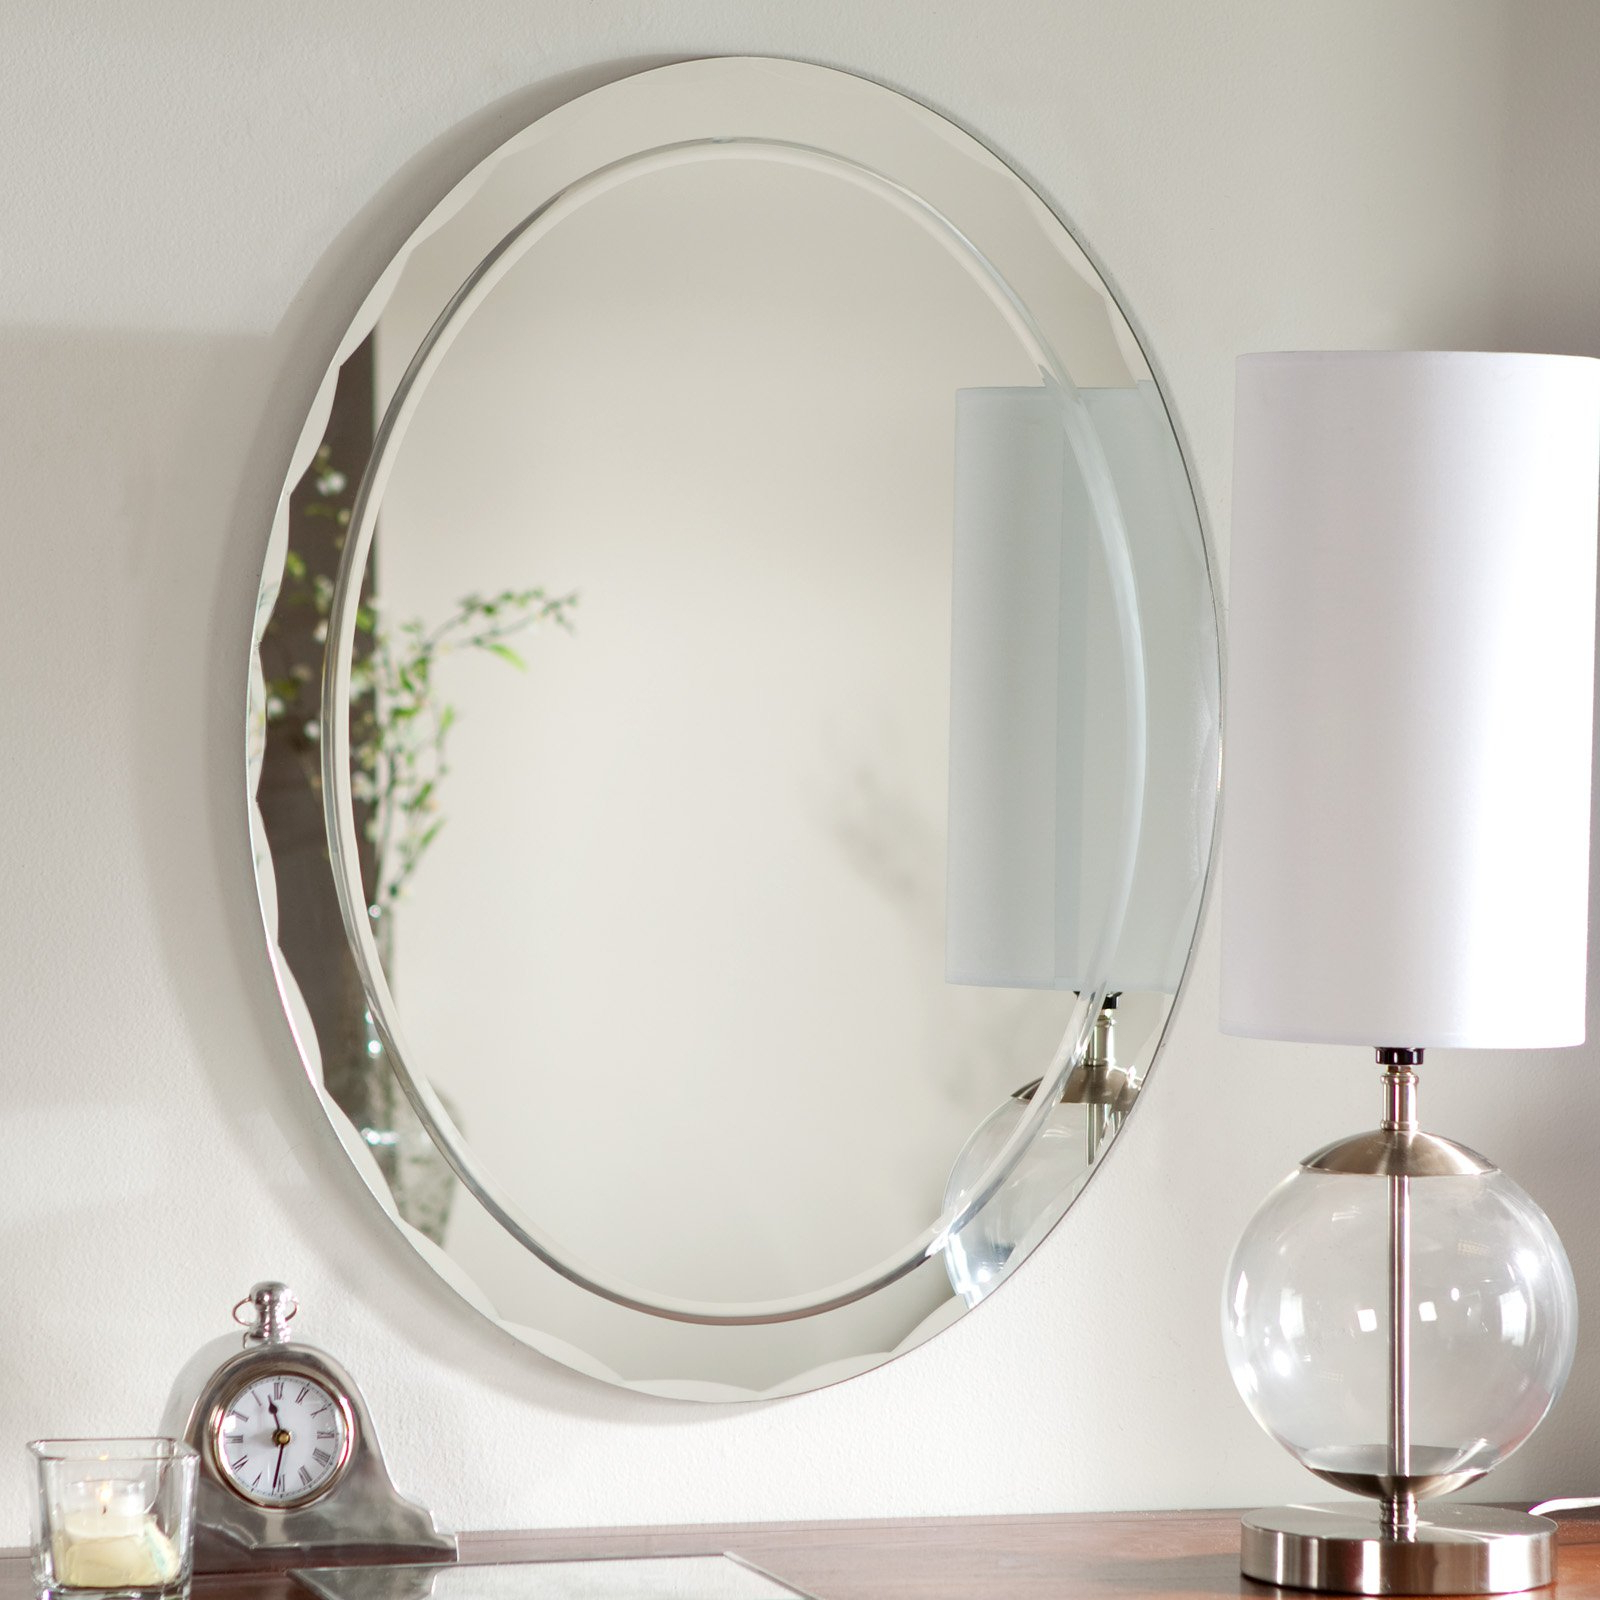 Remarkable Decorative Beveled Wall Mirrors Frame Large Three With Trendy Frameless Full Length Wall Mirrors (View 16 of 20)